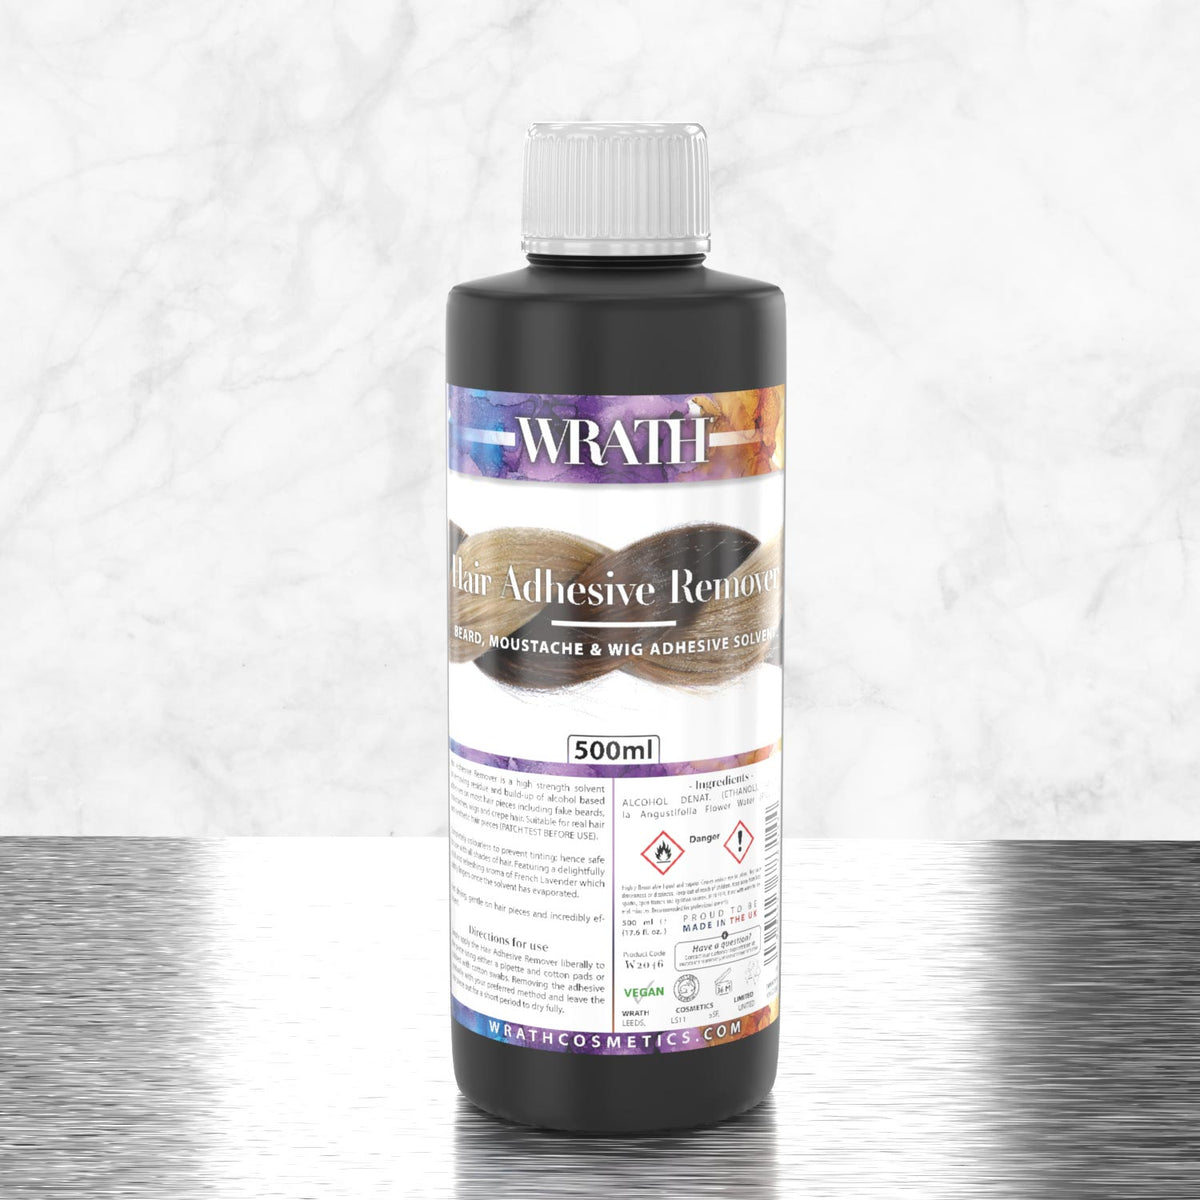 WRATH Hair Adhesive Remover (Postiche Cleanser)